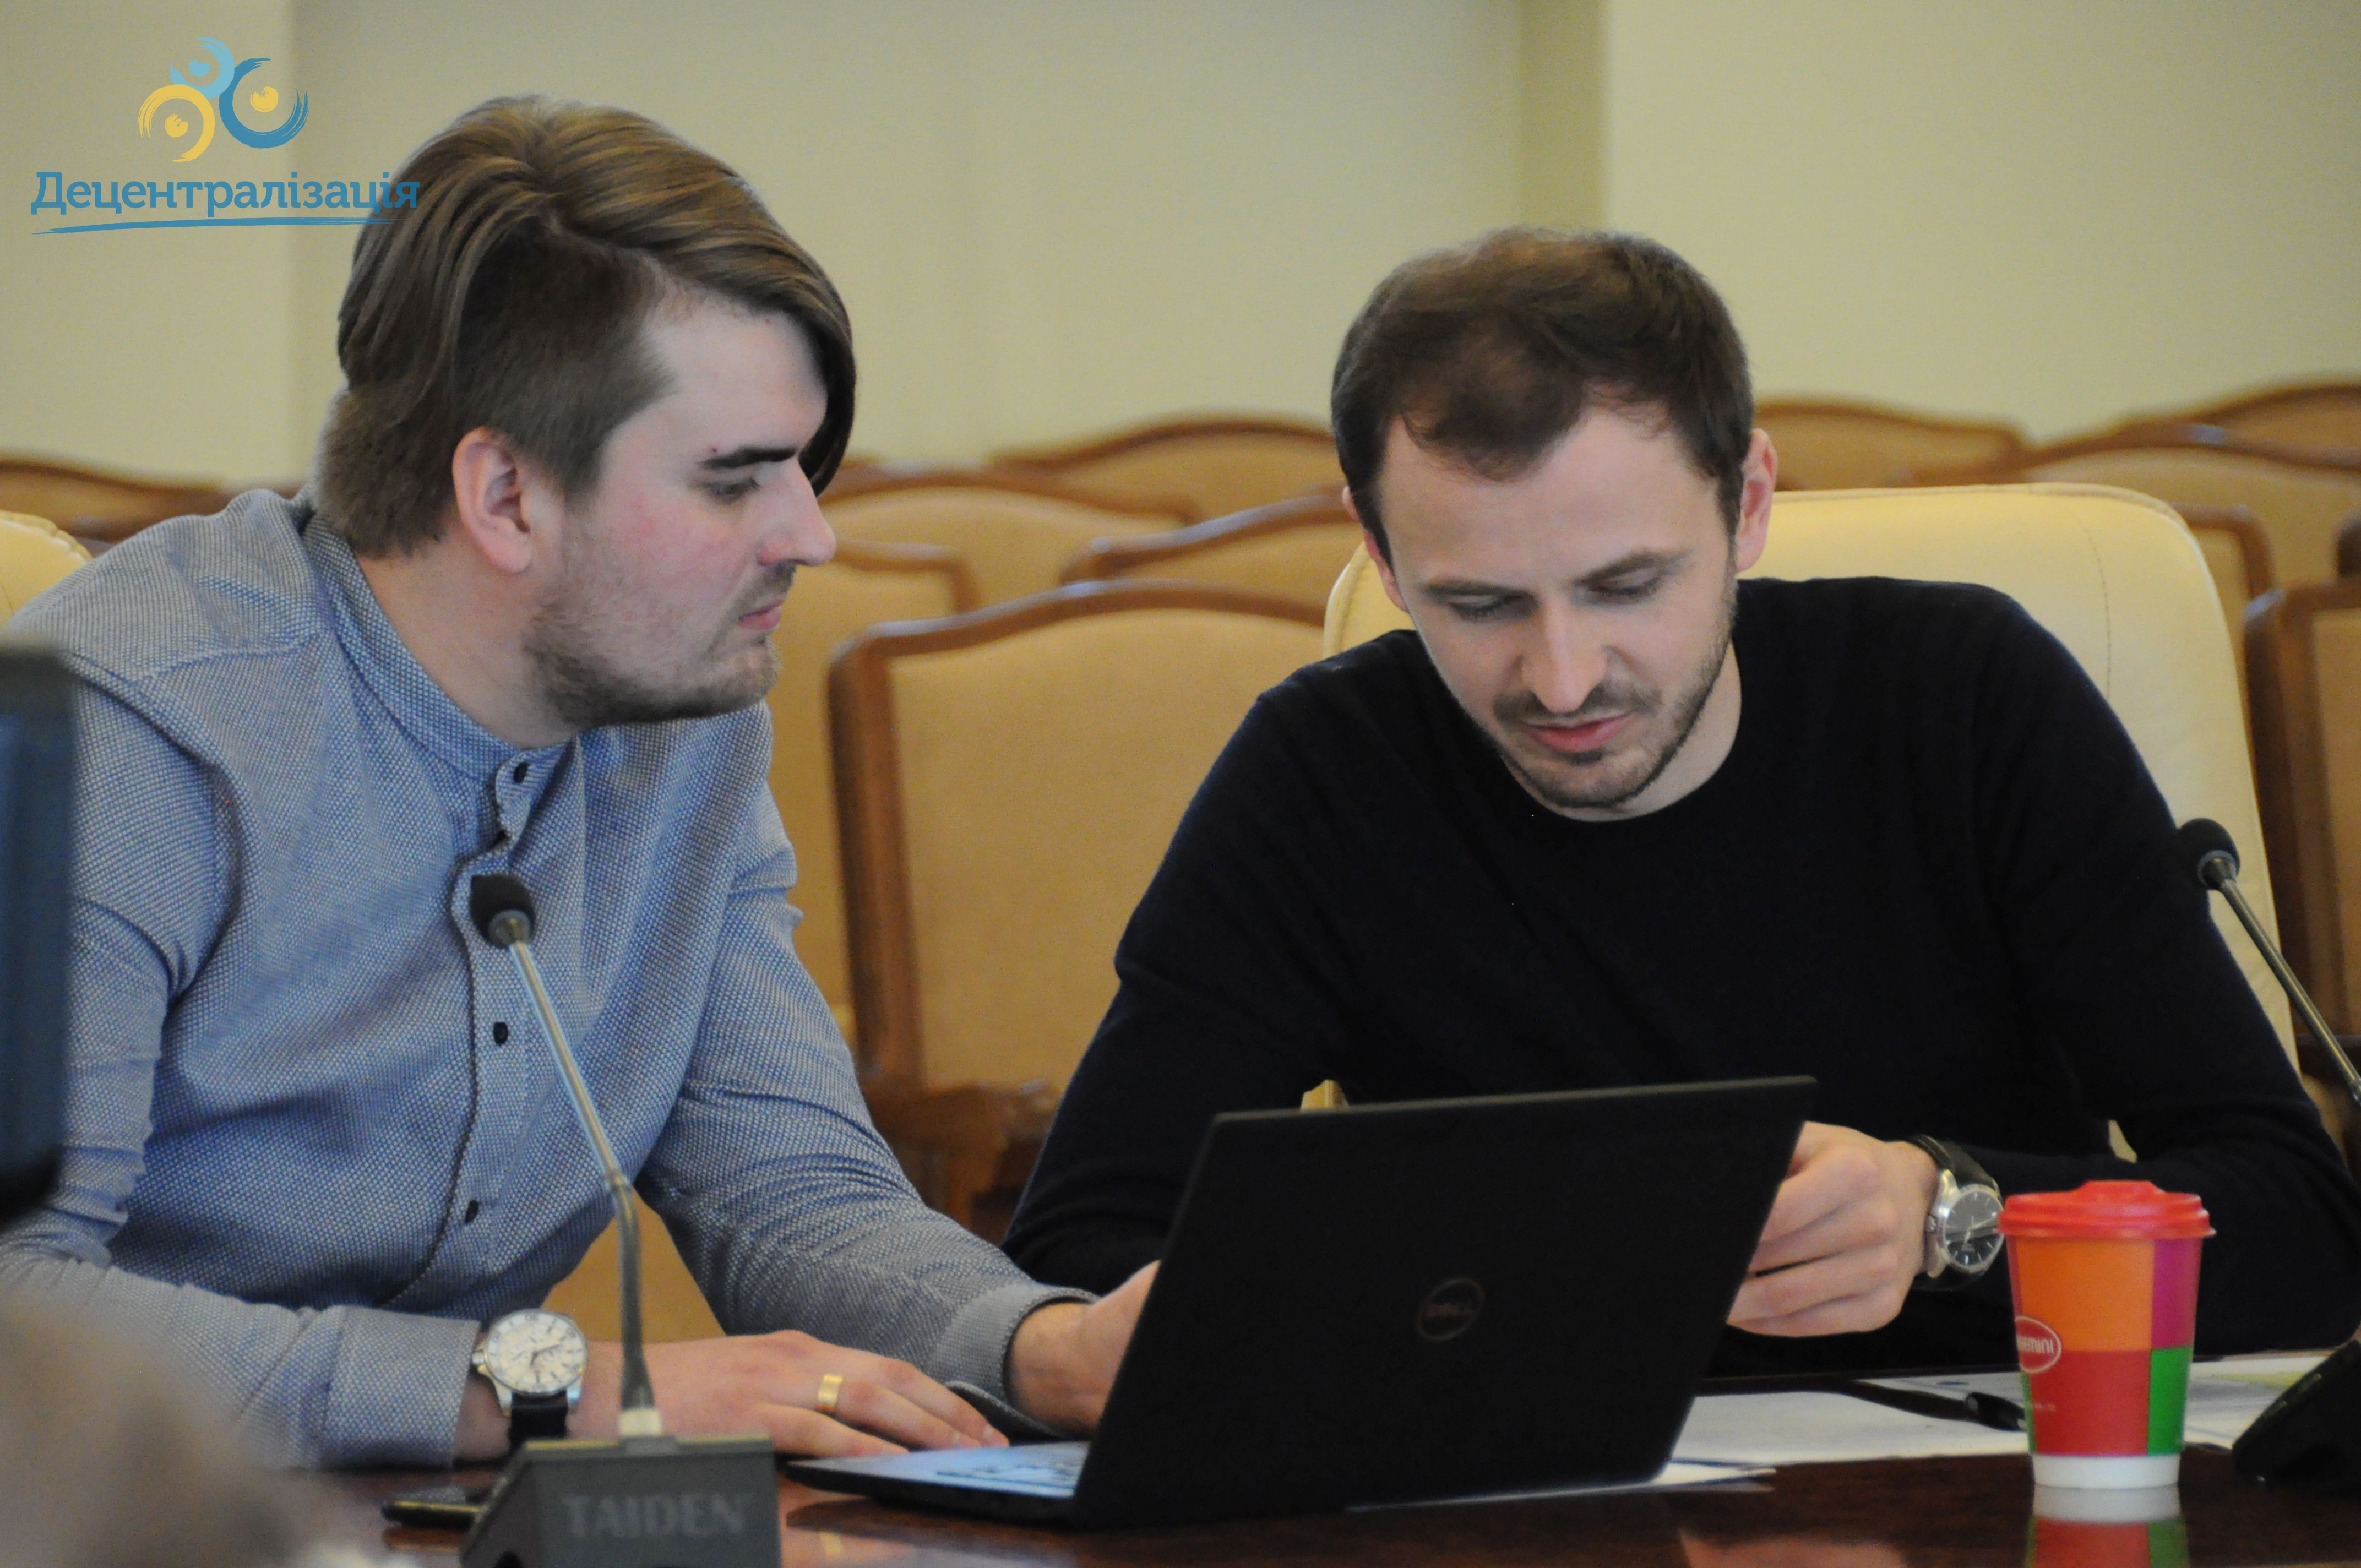 Drafting perspective plans: the objective is to find the best solutions for hromada configurations